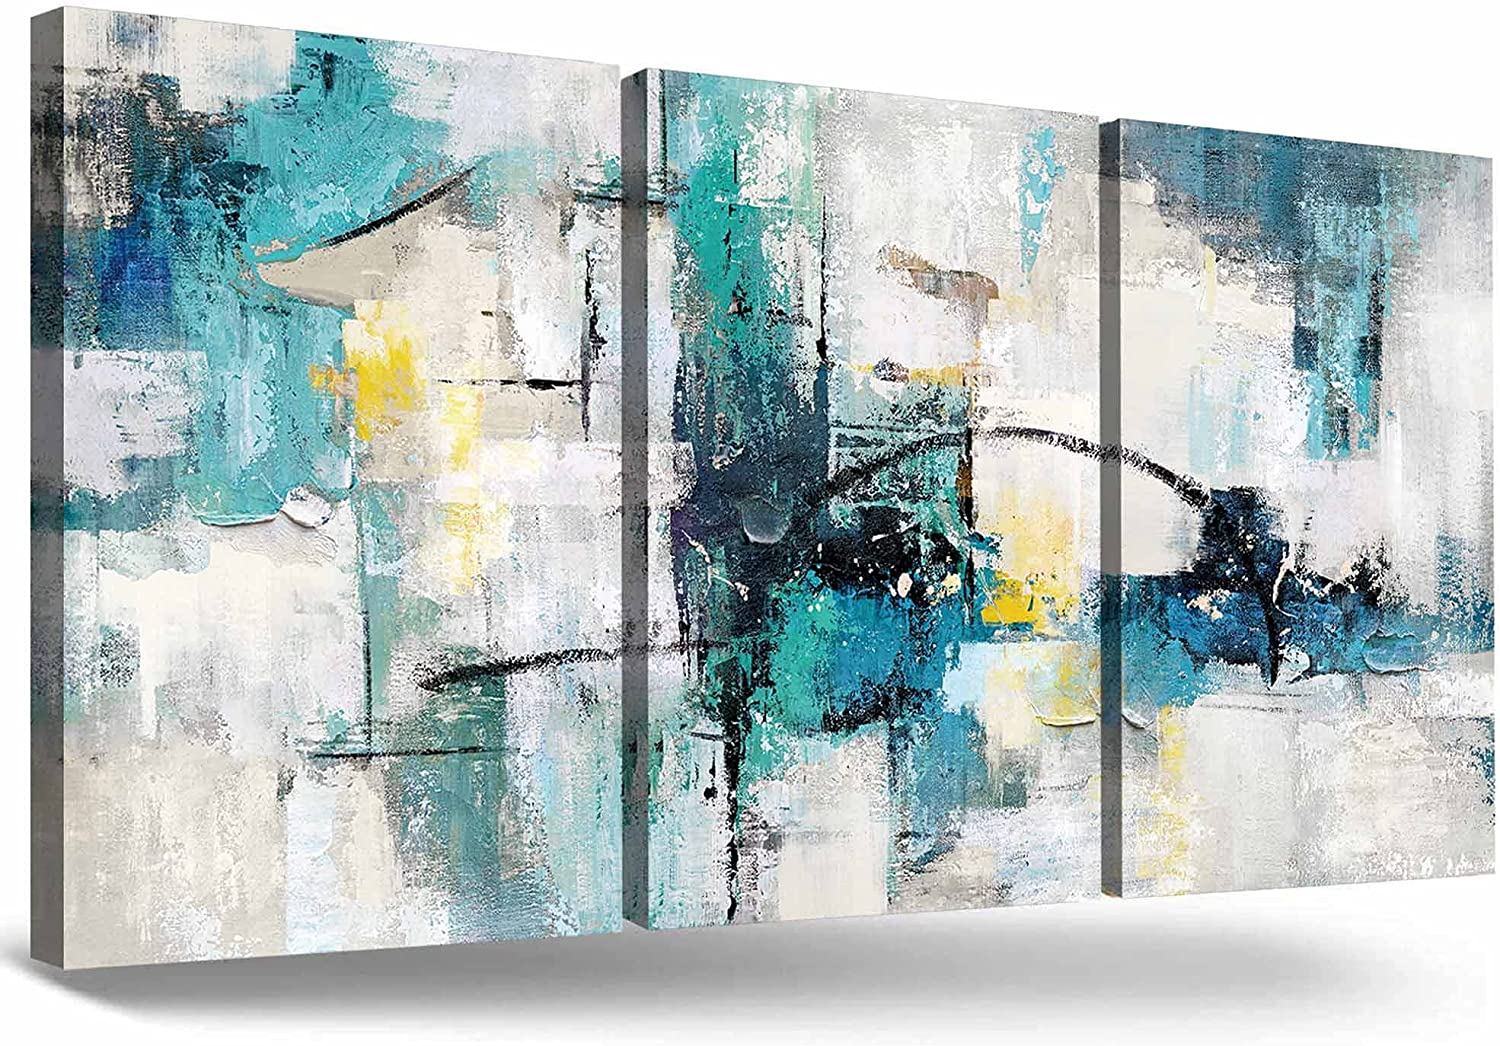 GIFTTWART Teal Blue Wall Art Gray Black Turquoise Wall Décor for Living Room 3 Piece Abstract Canvas Painting for Bathroom Bedroom Kitchen Office Decor Home Decorations NON-Handmade NON-3D 36''x16''